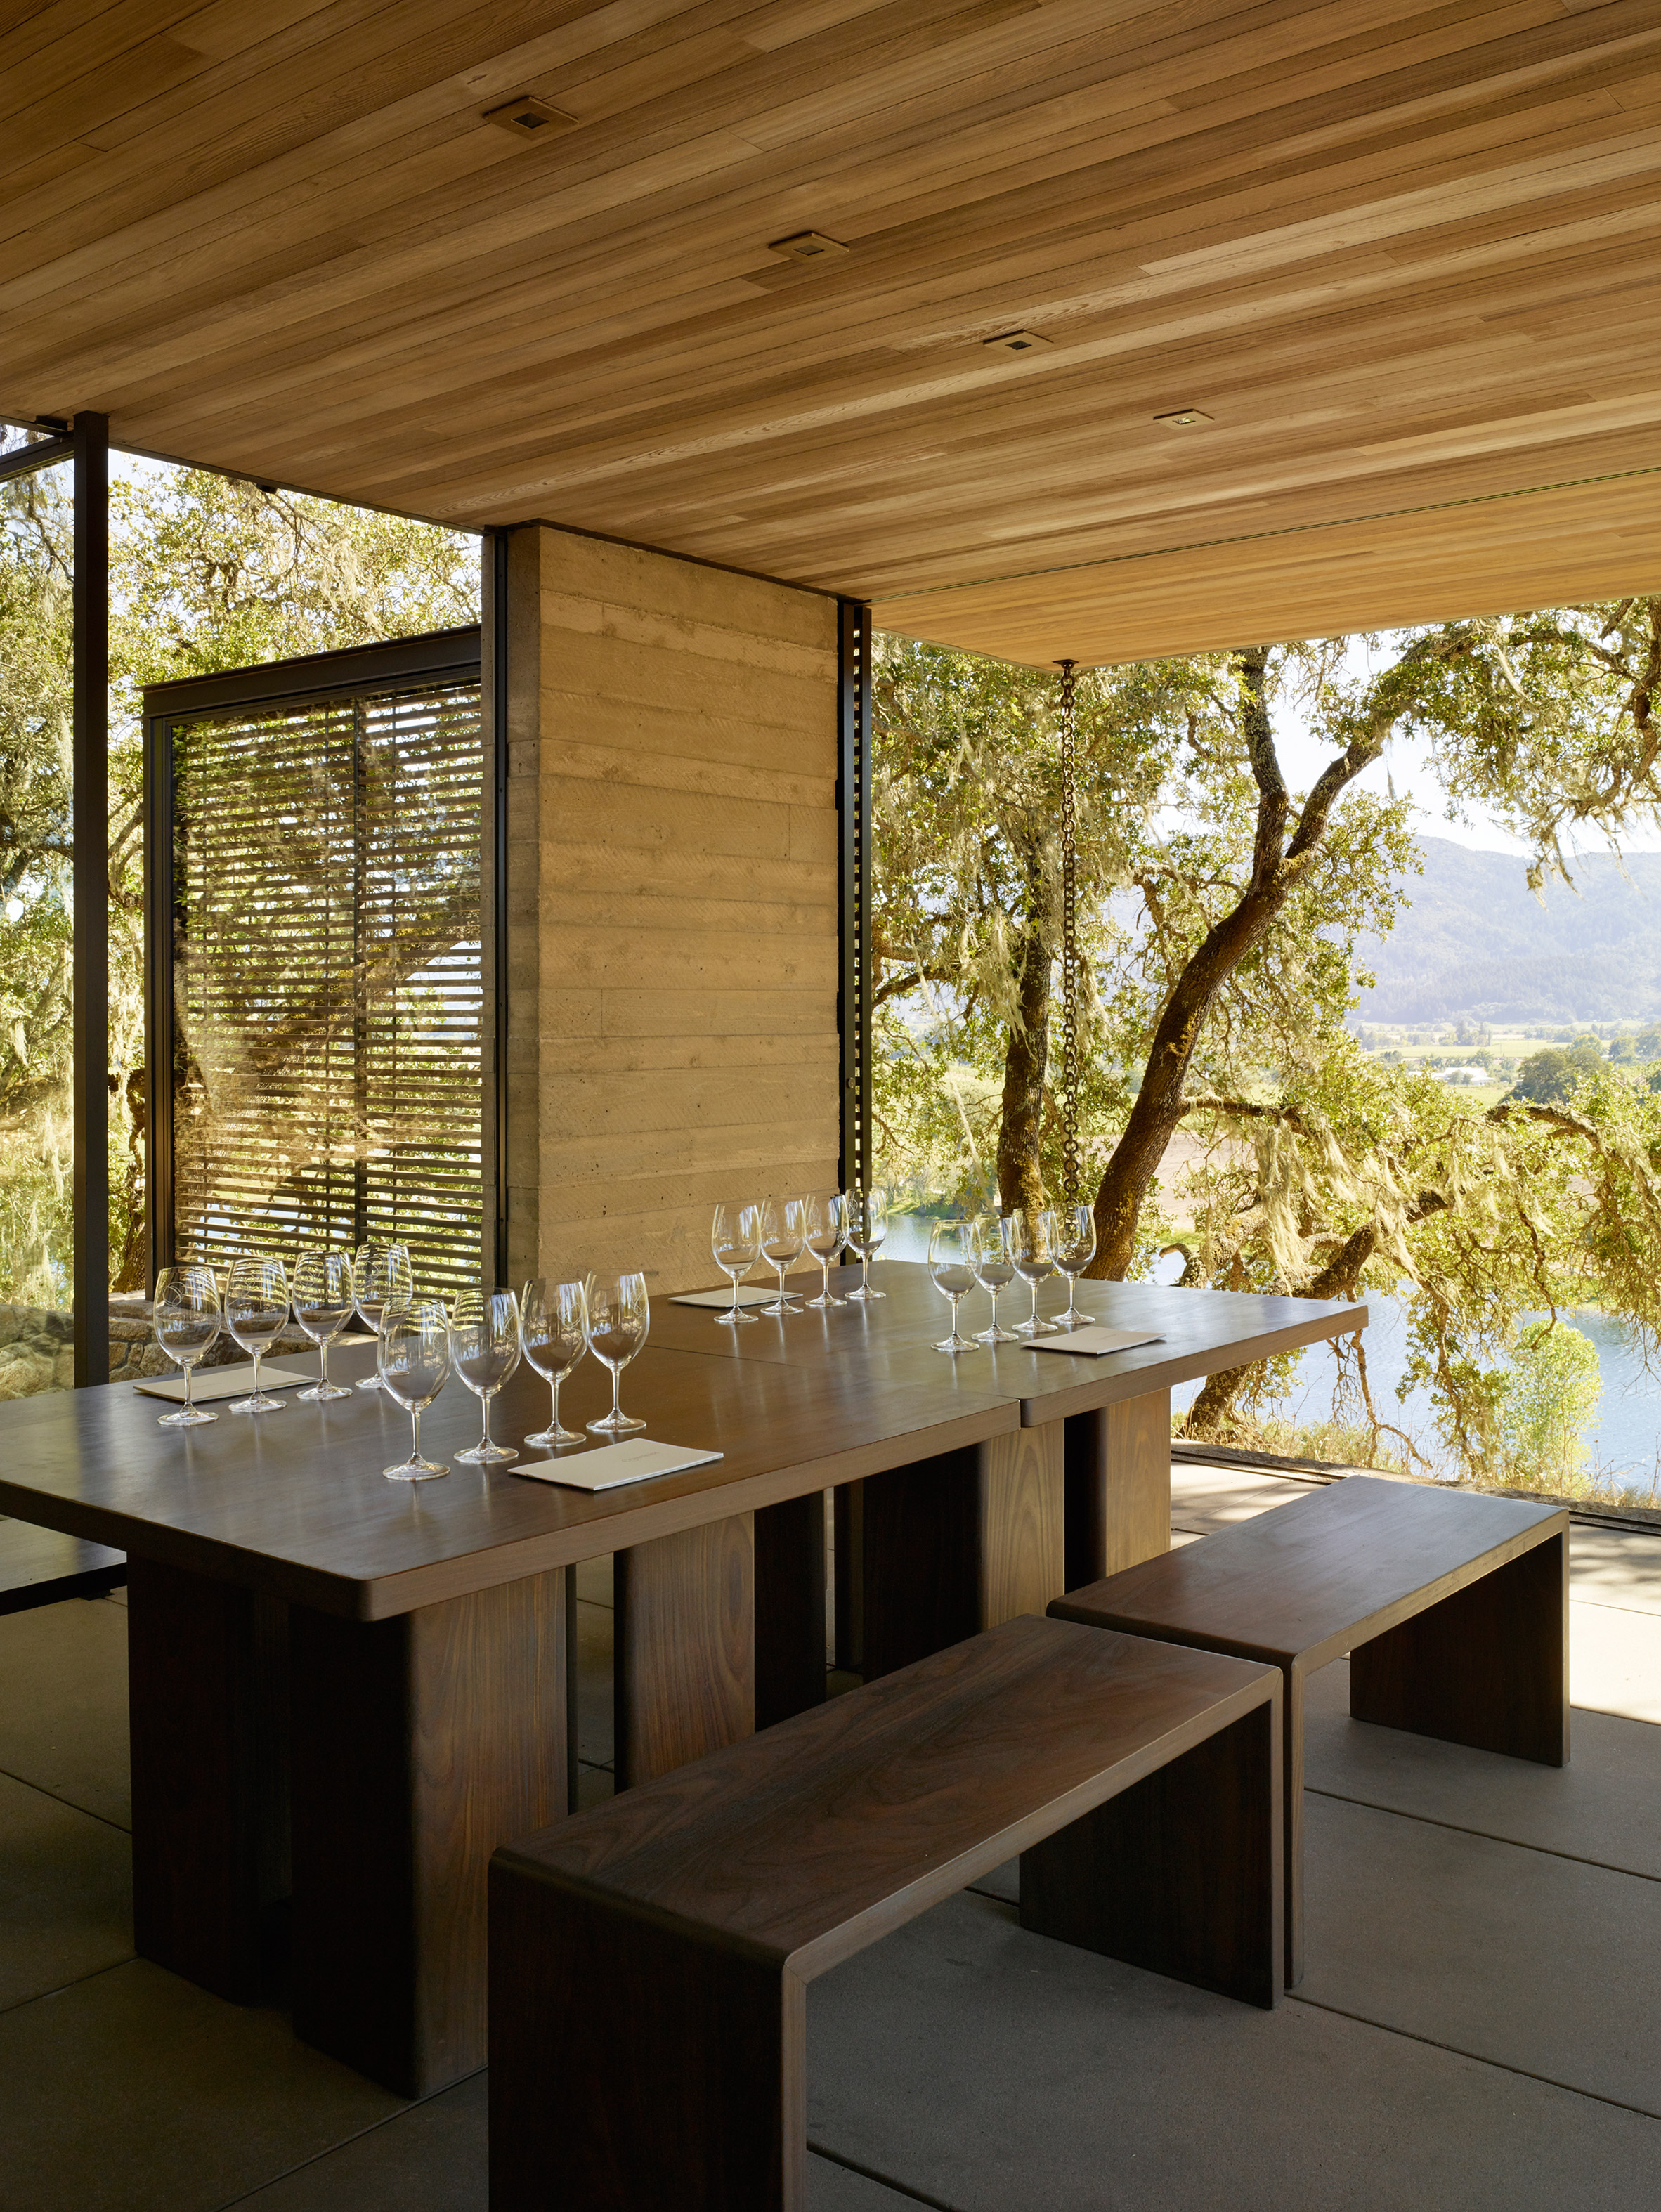 Walker Warner Architects create wine-tasting pavilions in Napa